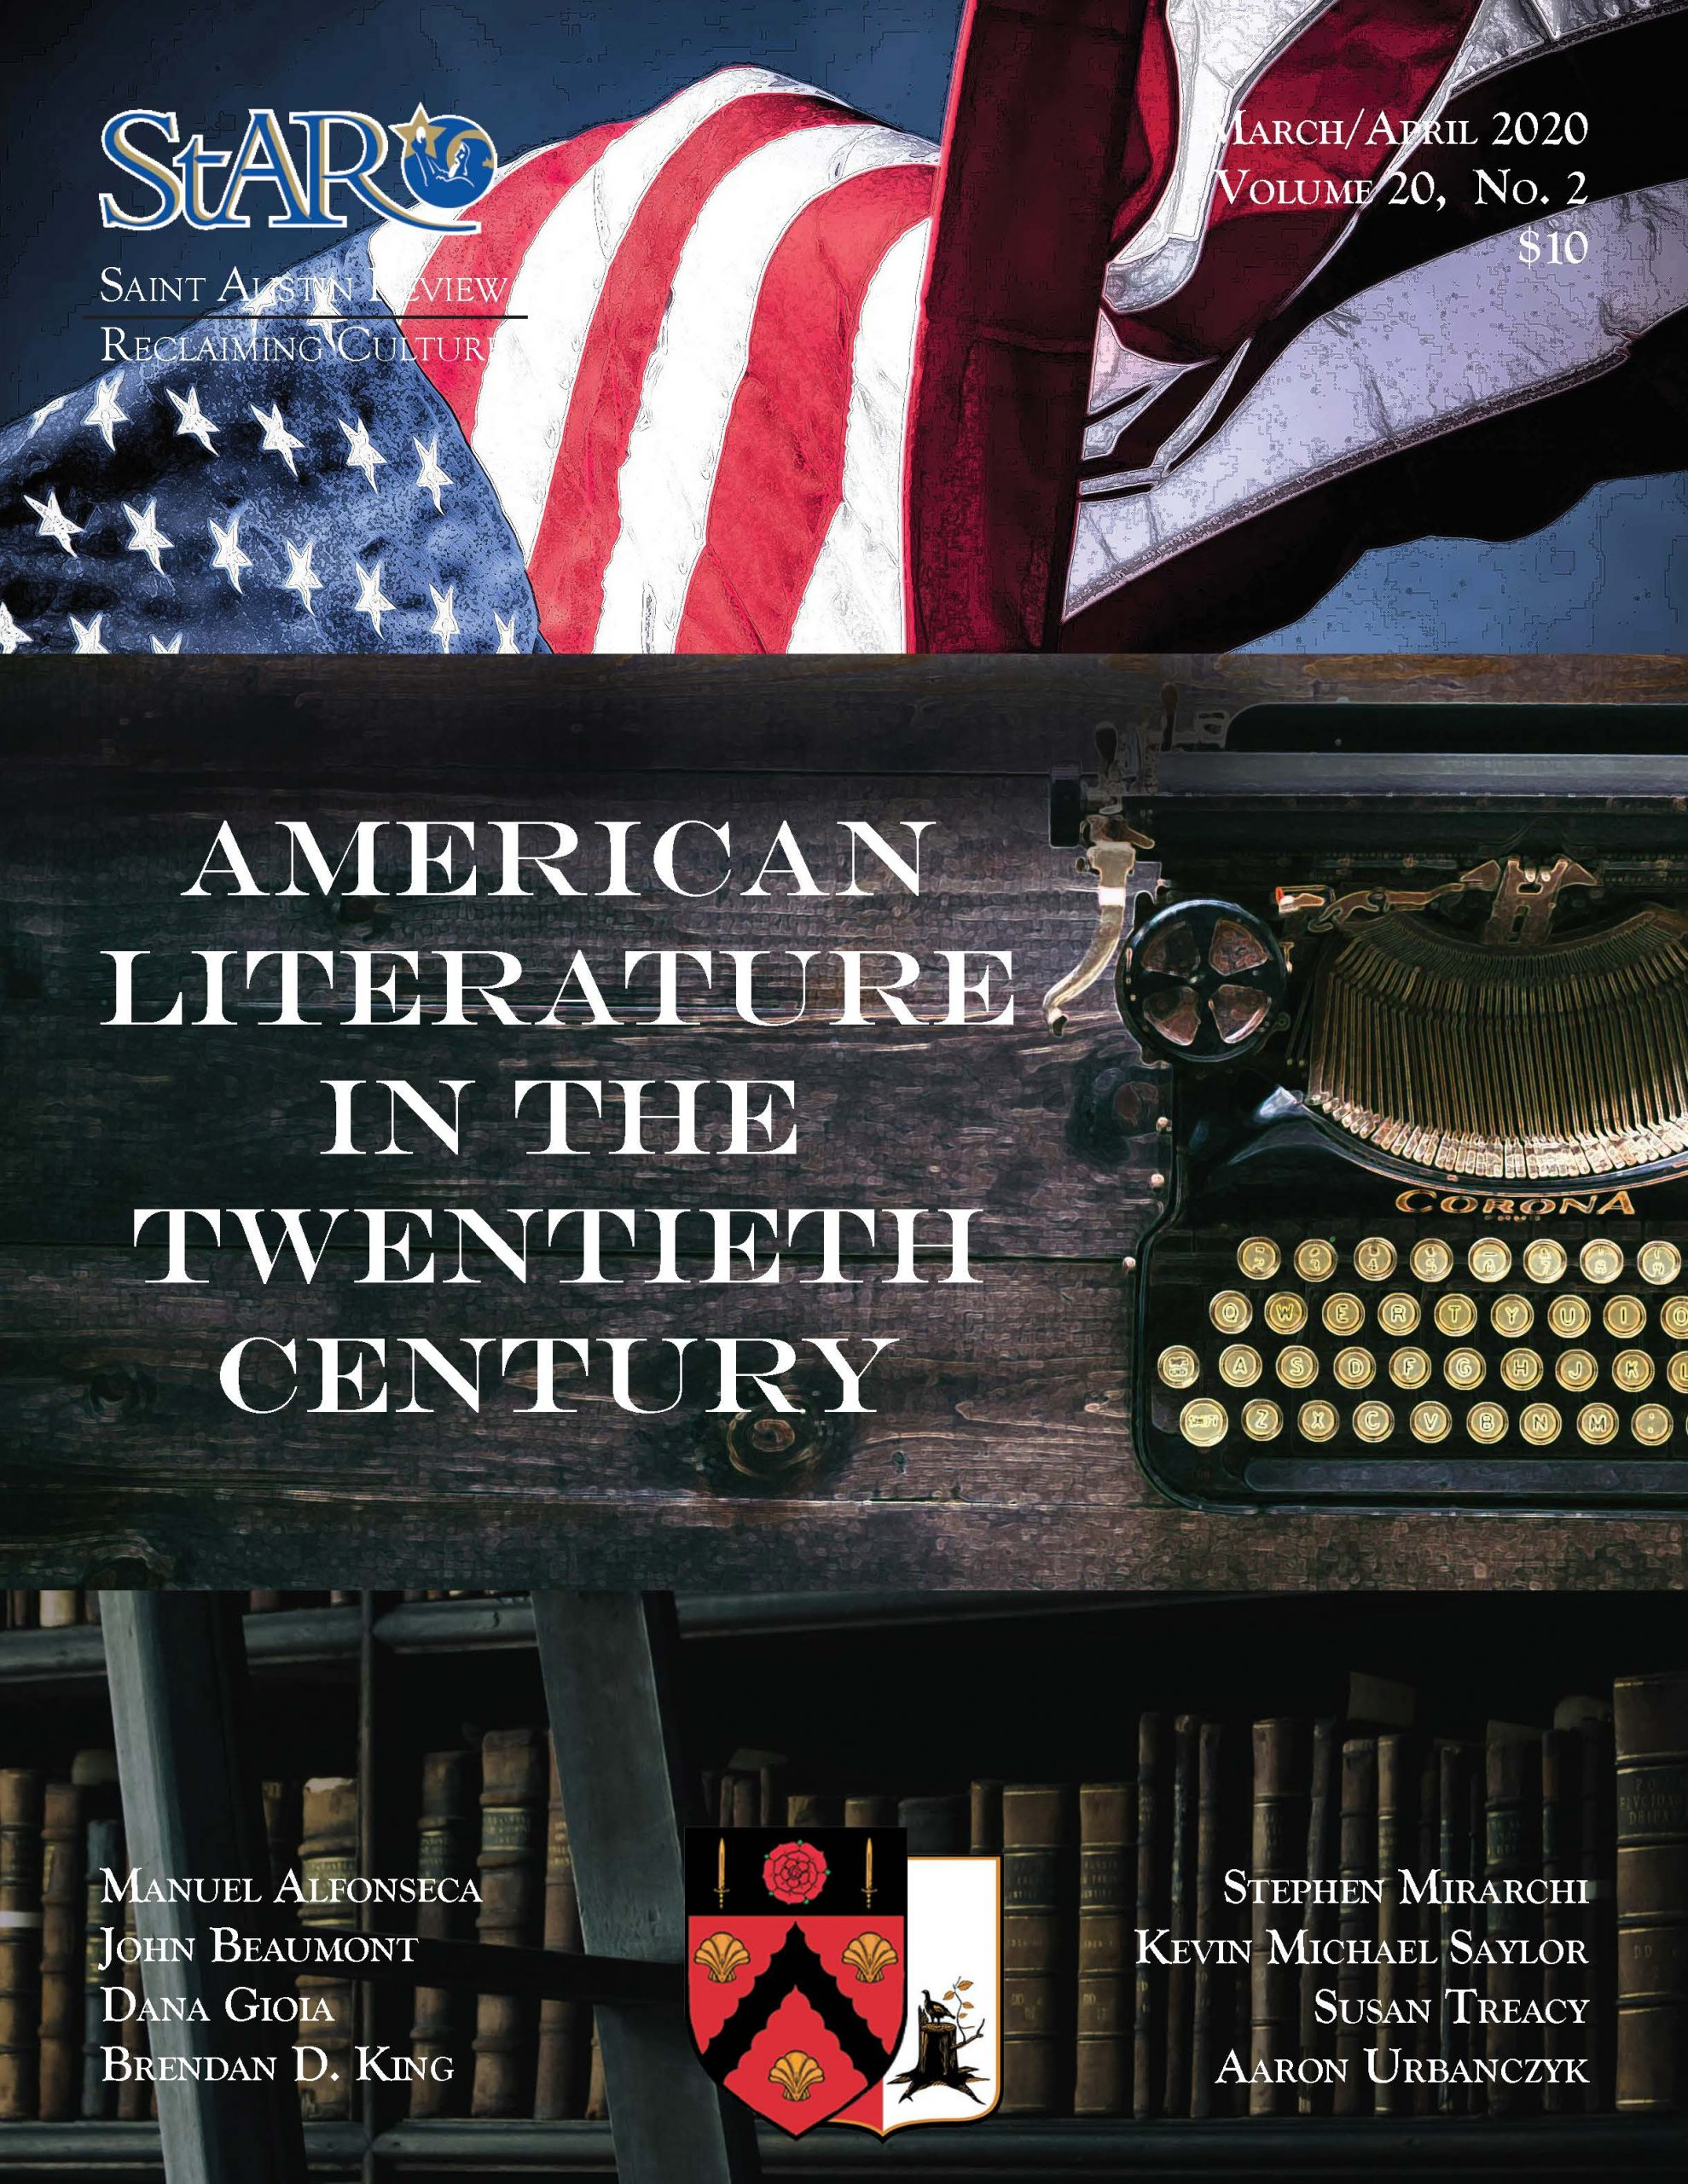 American Literature in the Twentieth Century